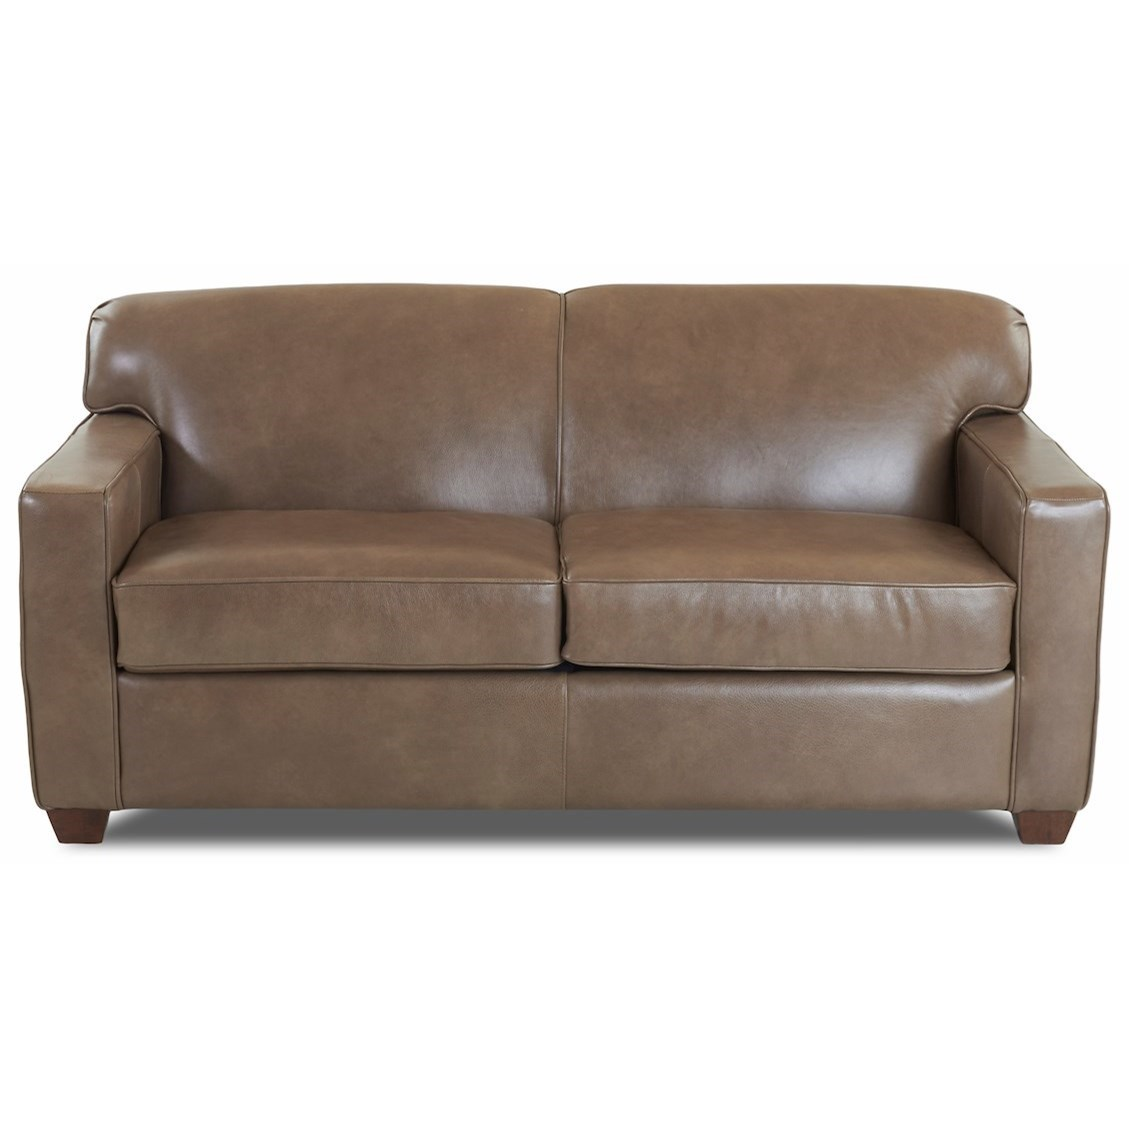 Leather Enso Memory Foam Regular Sleeper